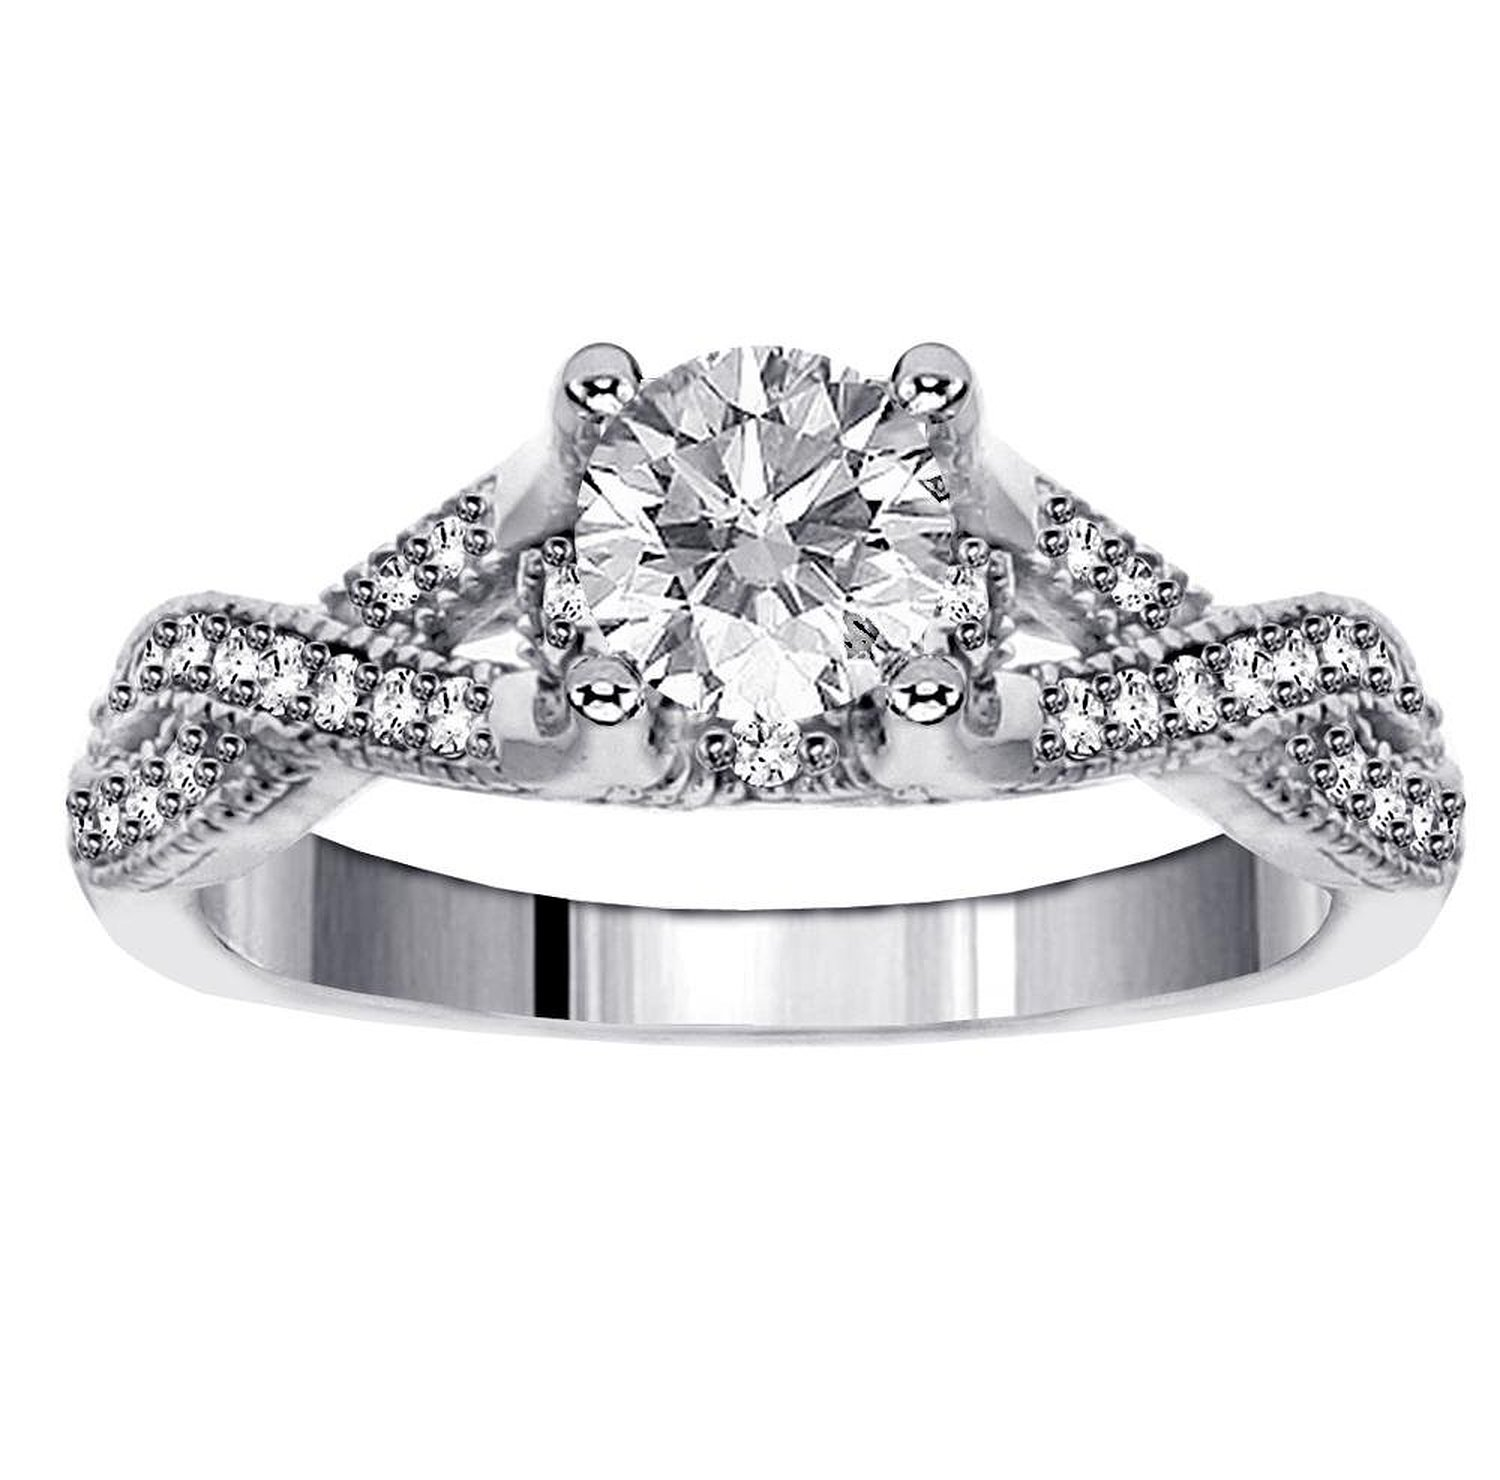 Amazon: 100 Ct Tw Brilliant Cut Diamond Encrusted Braided Engagement  Ring In Platinum: Jewelry